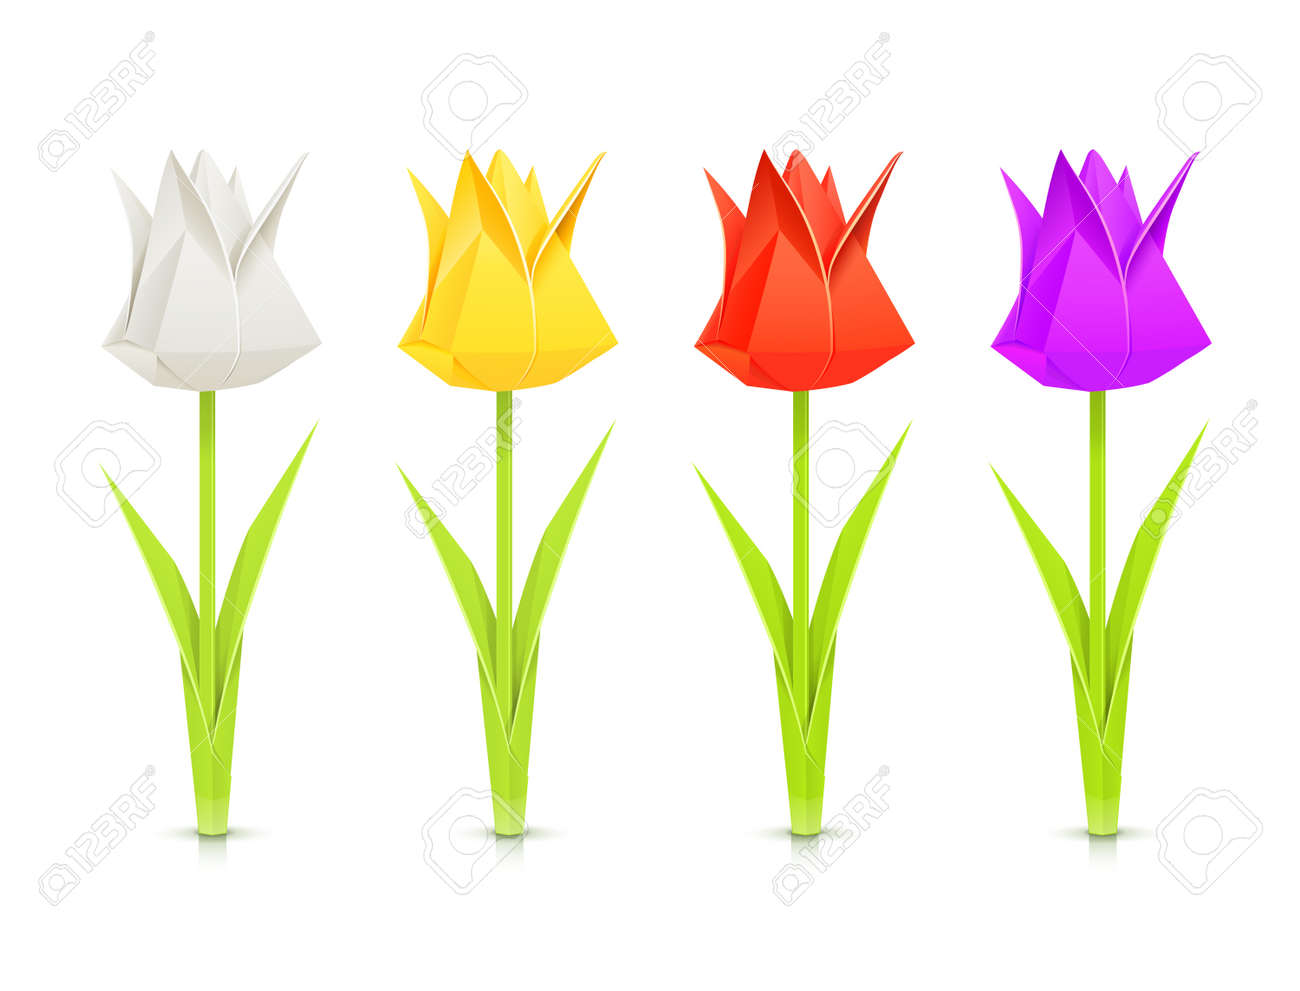 Set of tulips paper origami flowers vector illustration isolated set of tulips paper origami flowers vector illustration isolated on white background eps10 transparent objects jeuxipadfo Image collections